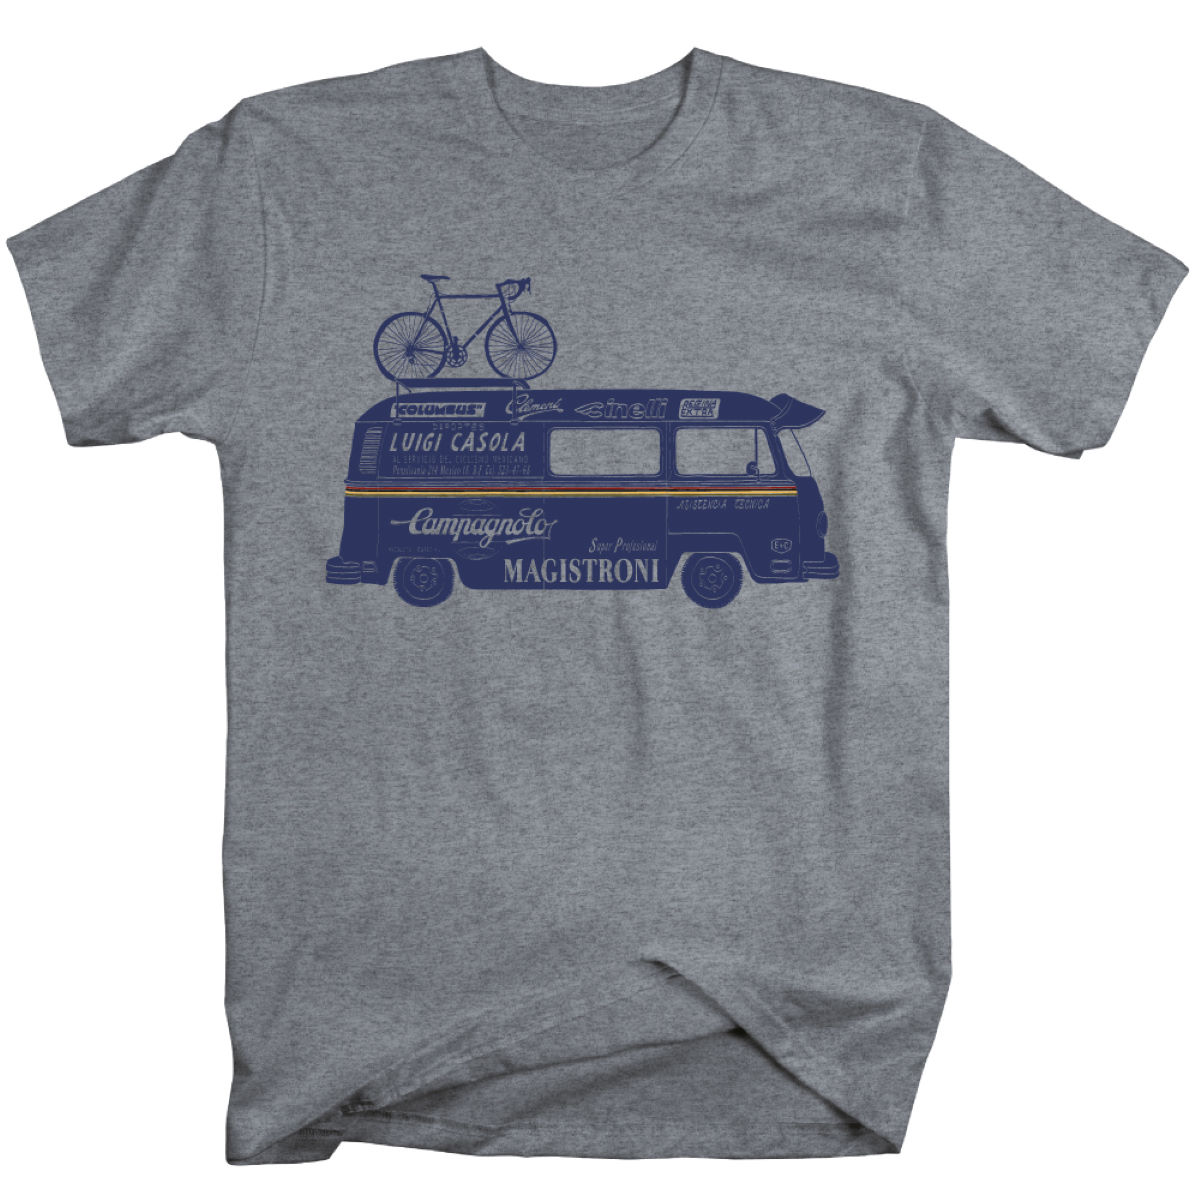 T-shirt Endurance Conspiracy Campy Van - XL Heather Grey T-shirts